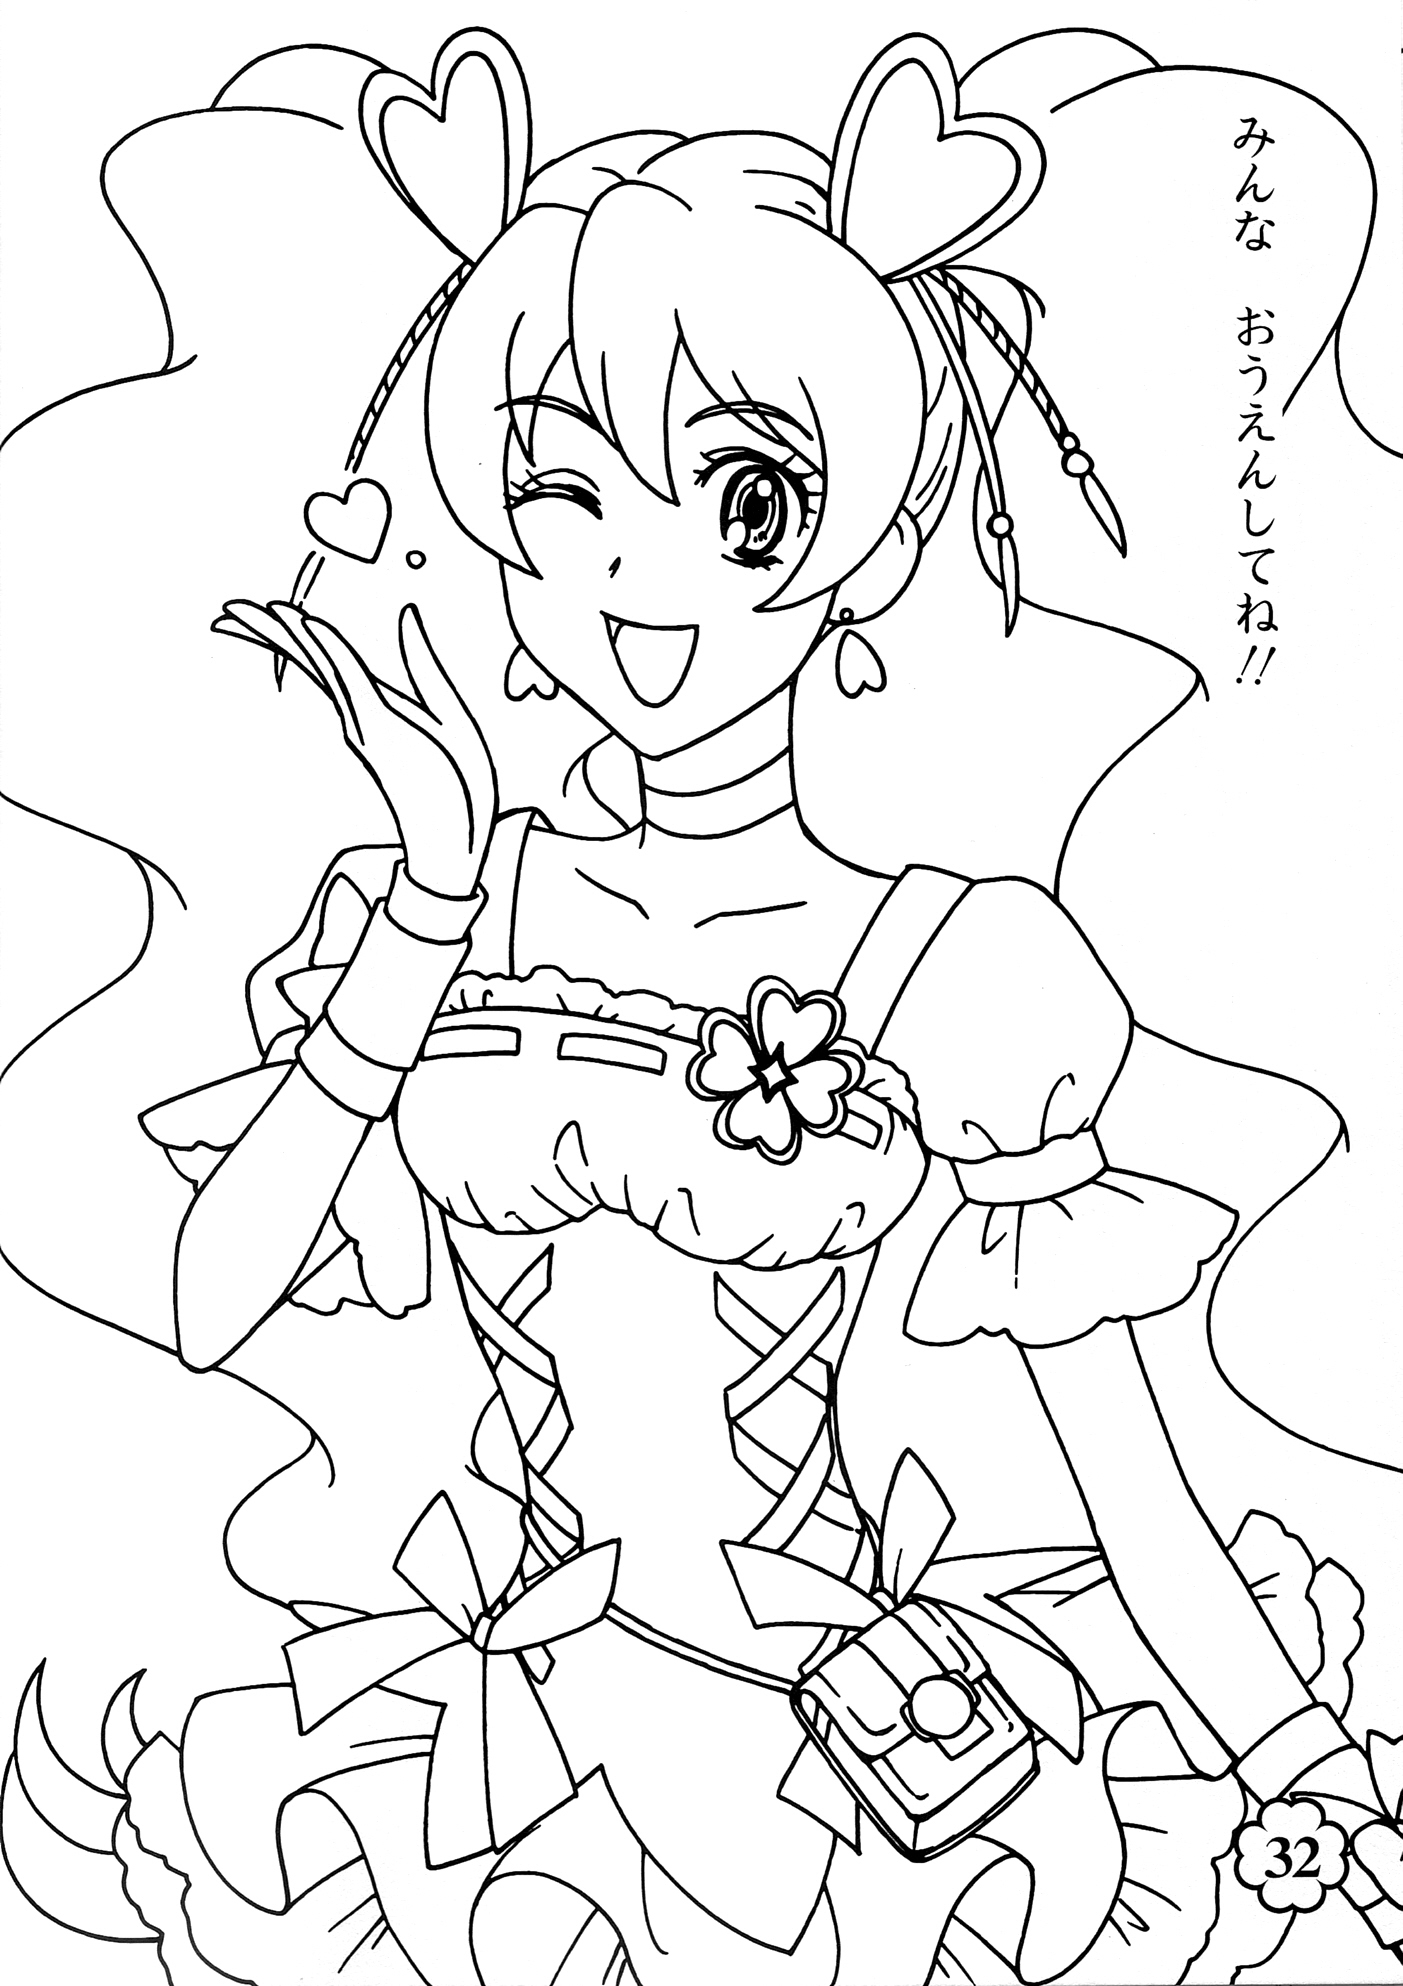 fresh coloring pages - photo#3